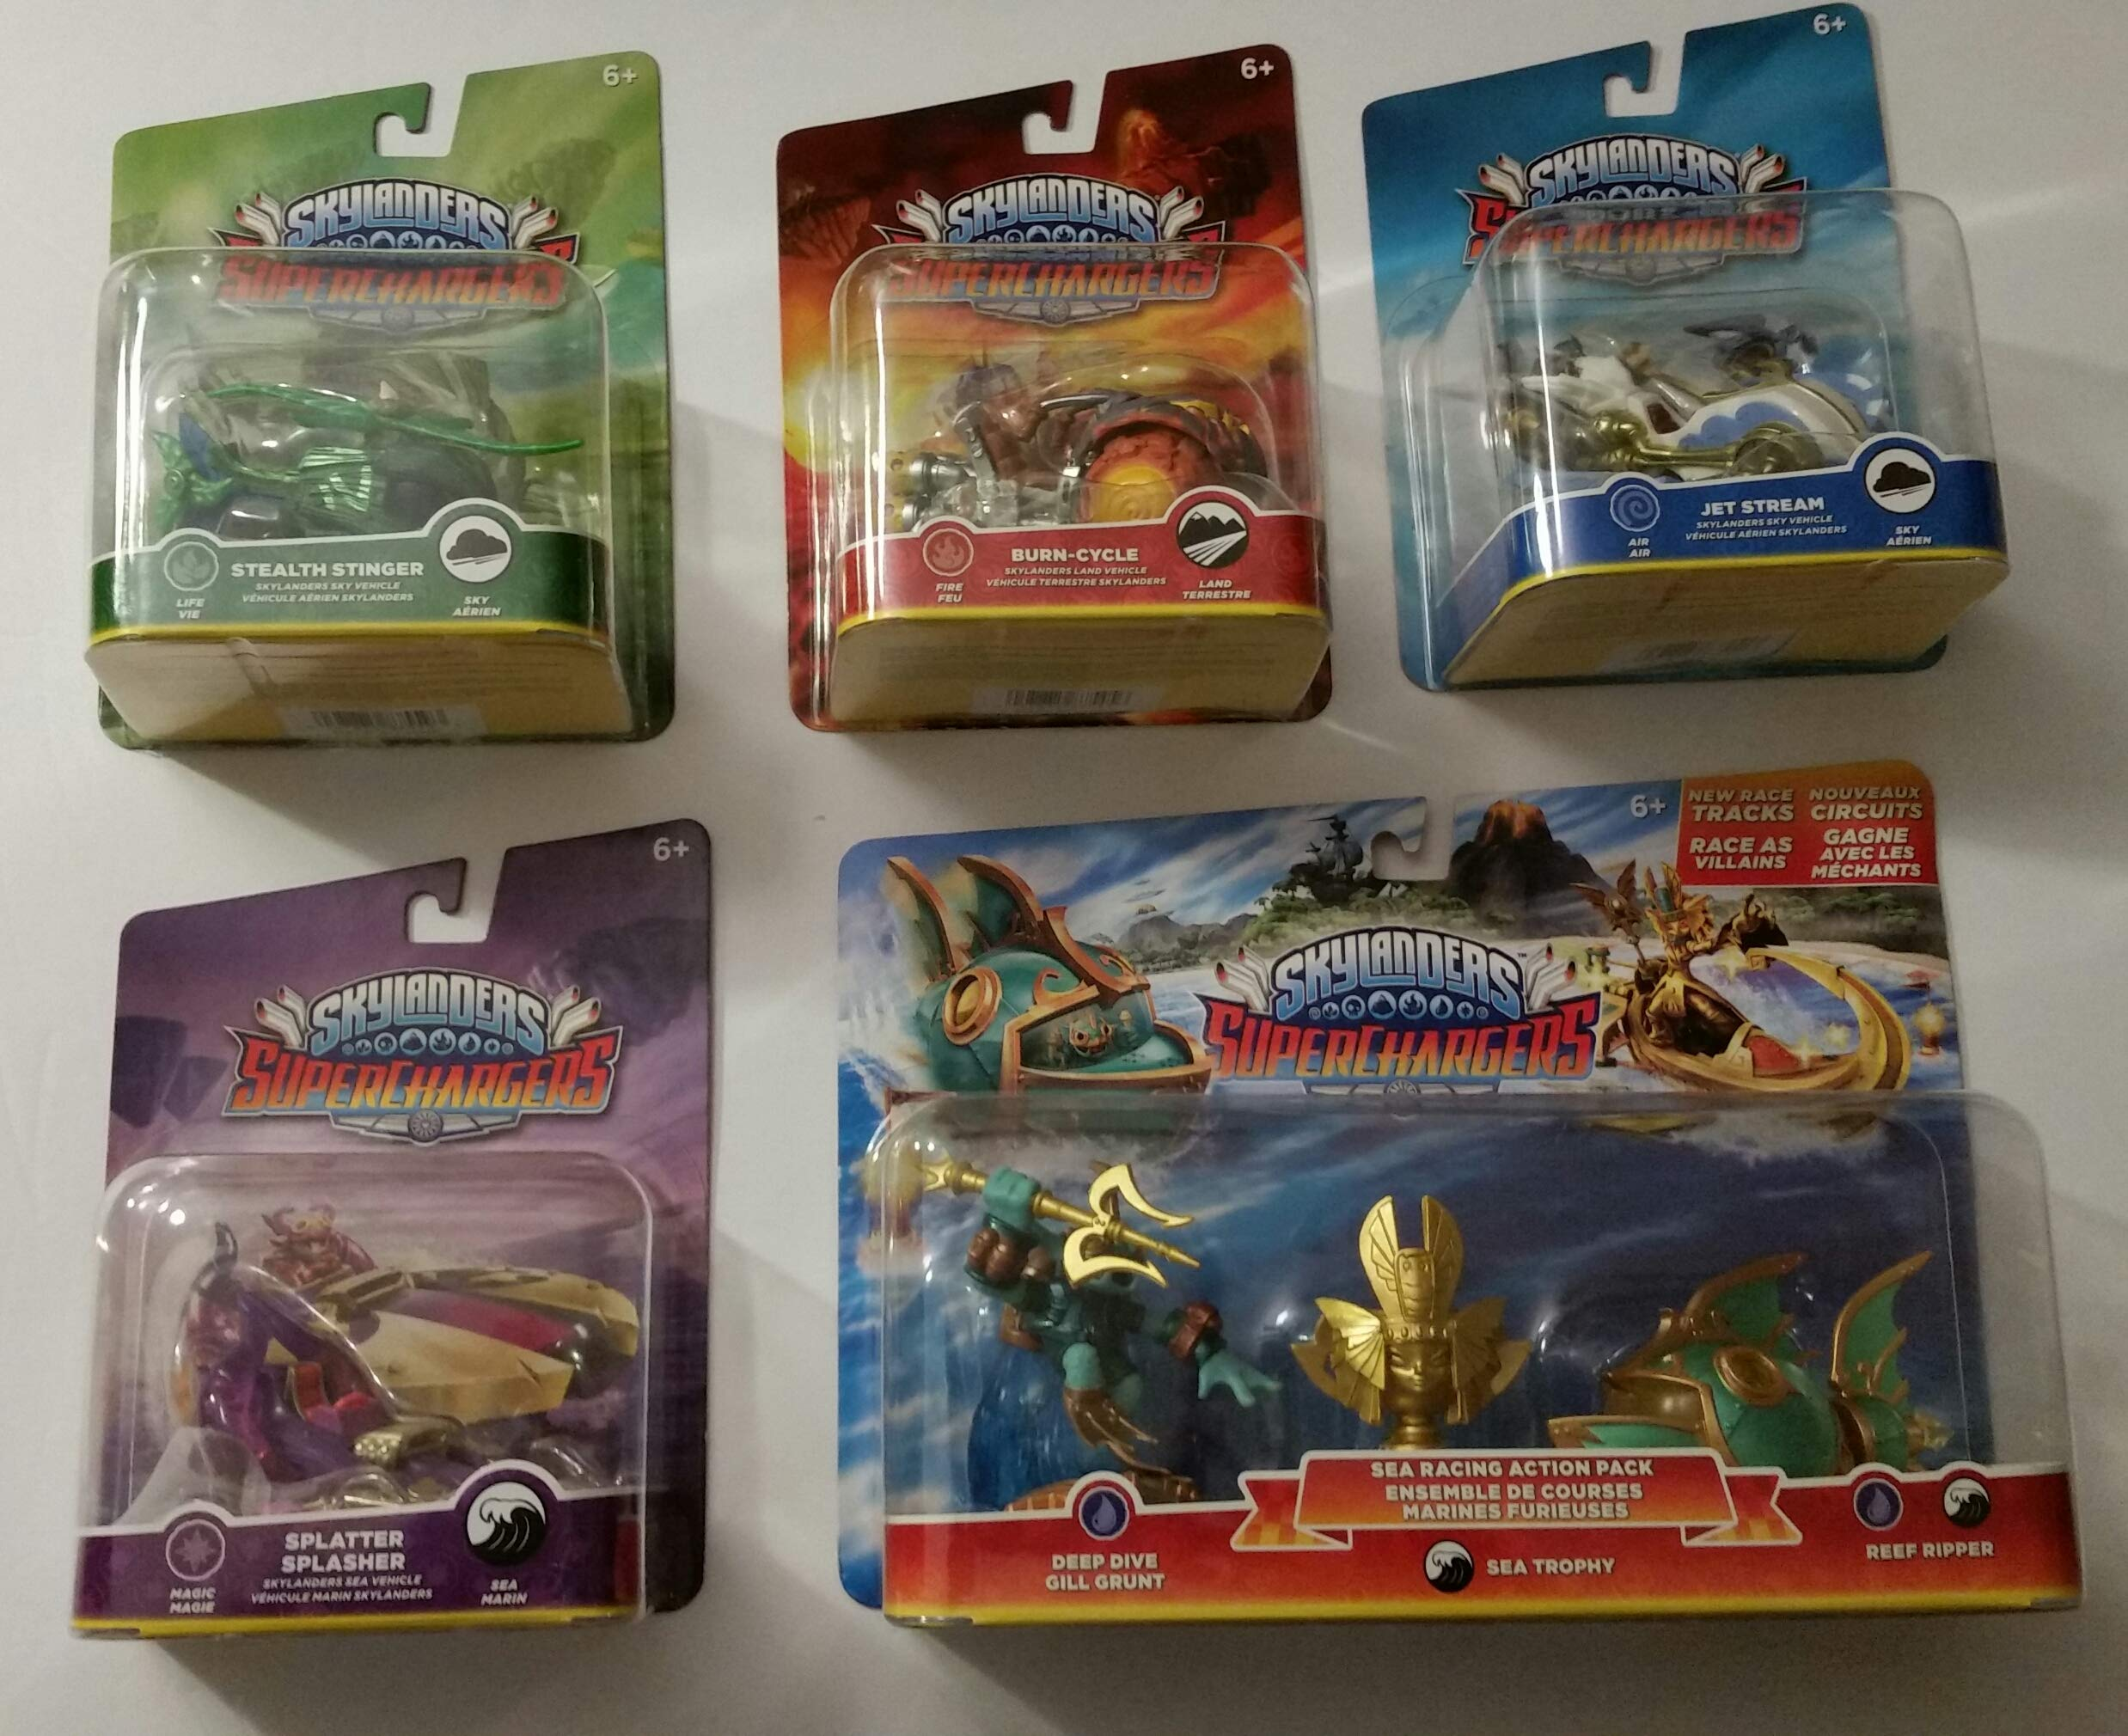 Skylanders SuperChargers 5 Pack Vehicle Starter Bundle! 5 Vehicles, 1 Trophy, 1 Character: Splatter Splasher , Burn-Cycle , Jet Stream ,Stealth Stinger and Deep Dive Gill Grunt, Reep Ripper Sea Trophy